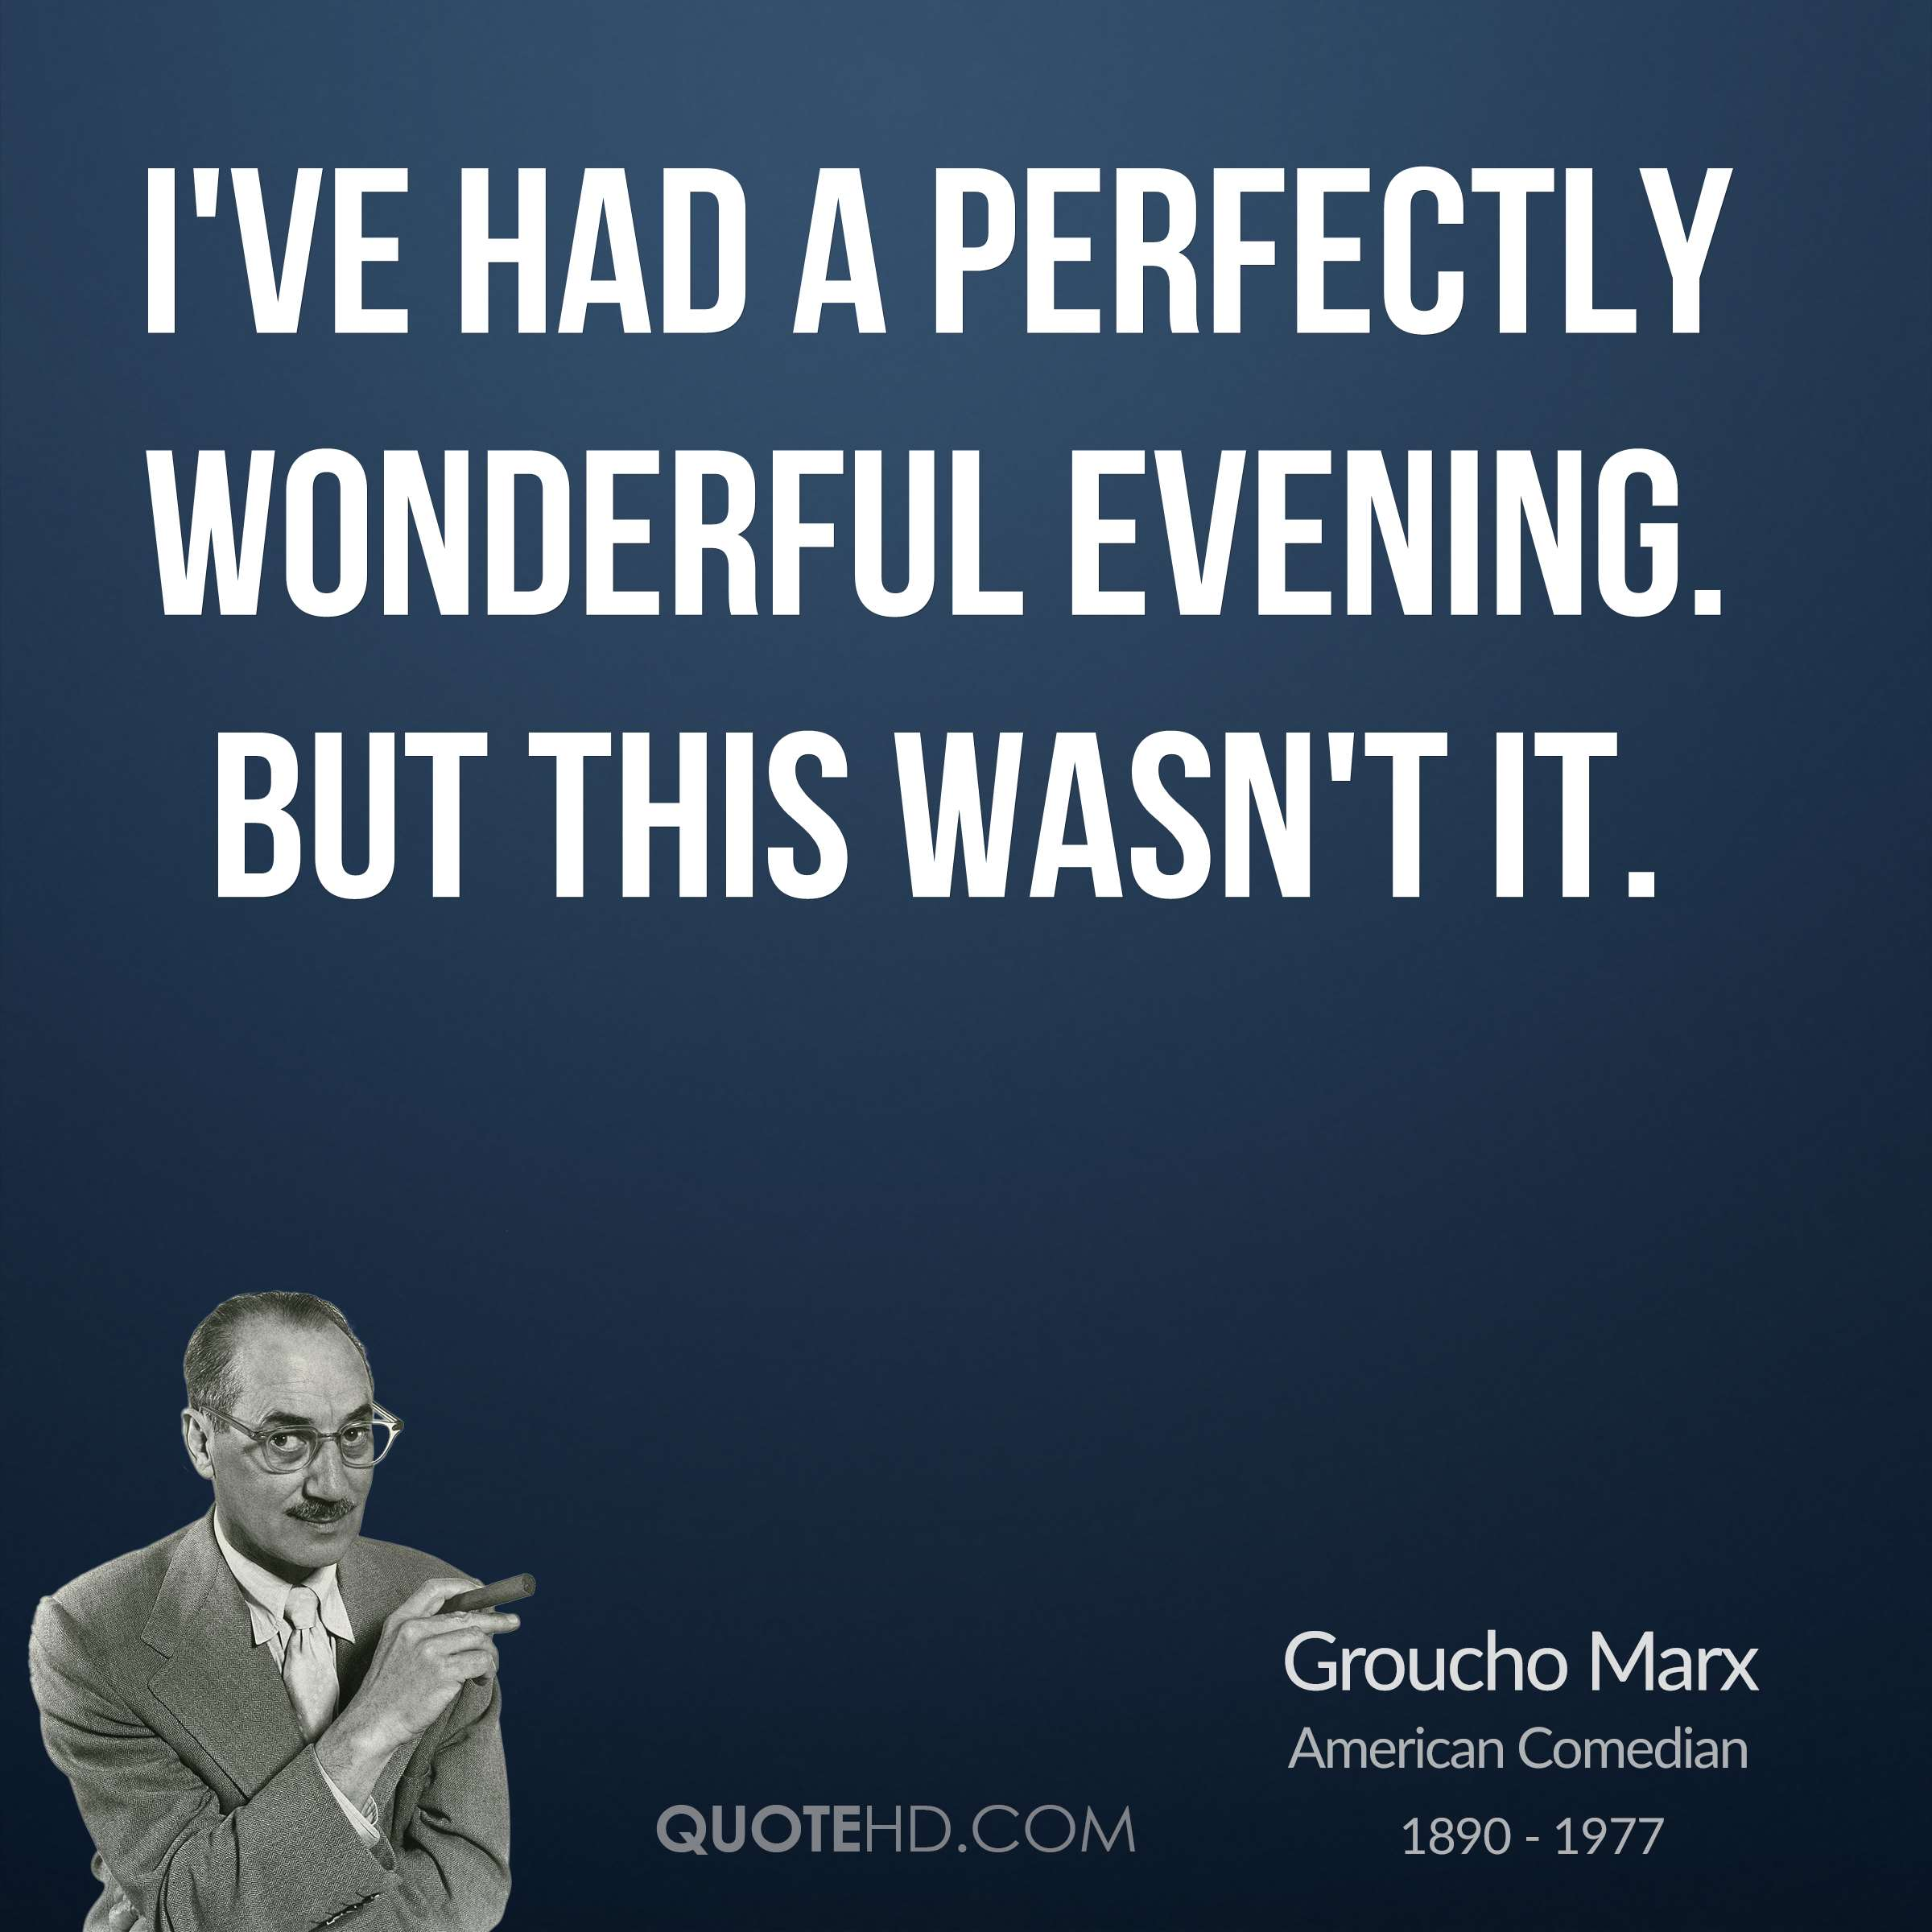 Funny Groucho Marx Quotes: :: SuperTopo Rock Climbing Discussion Topic